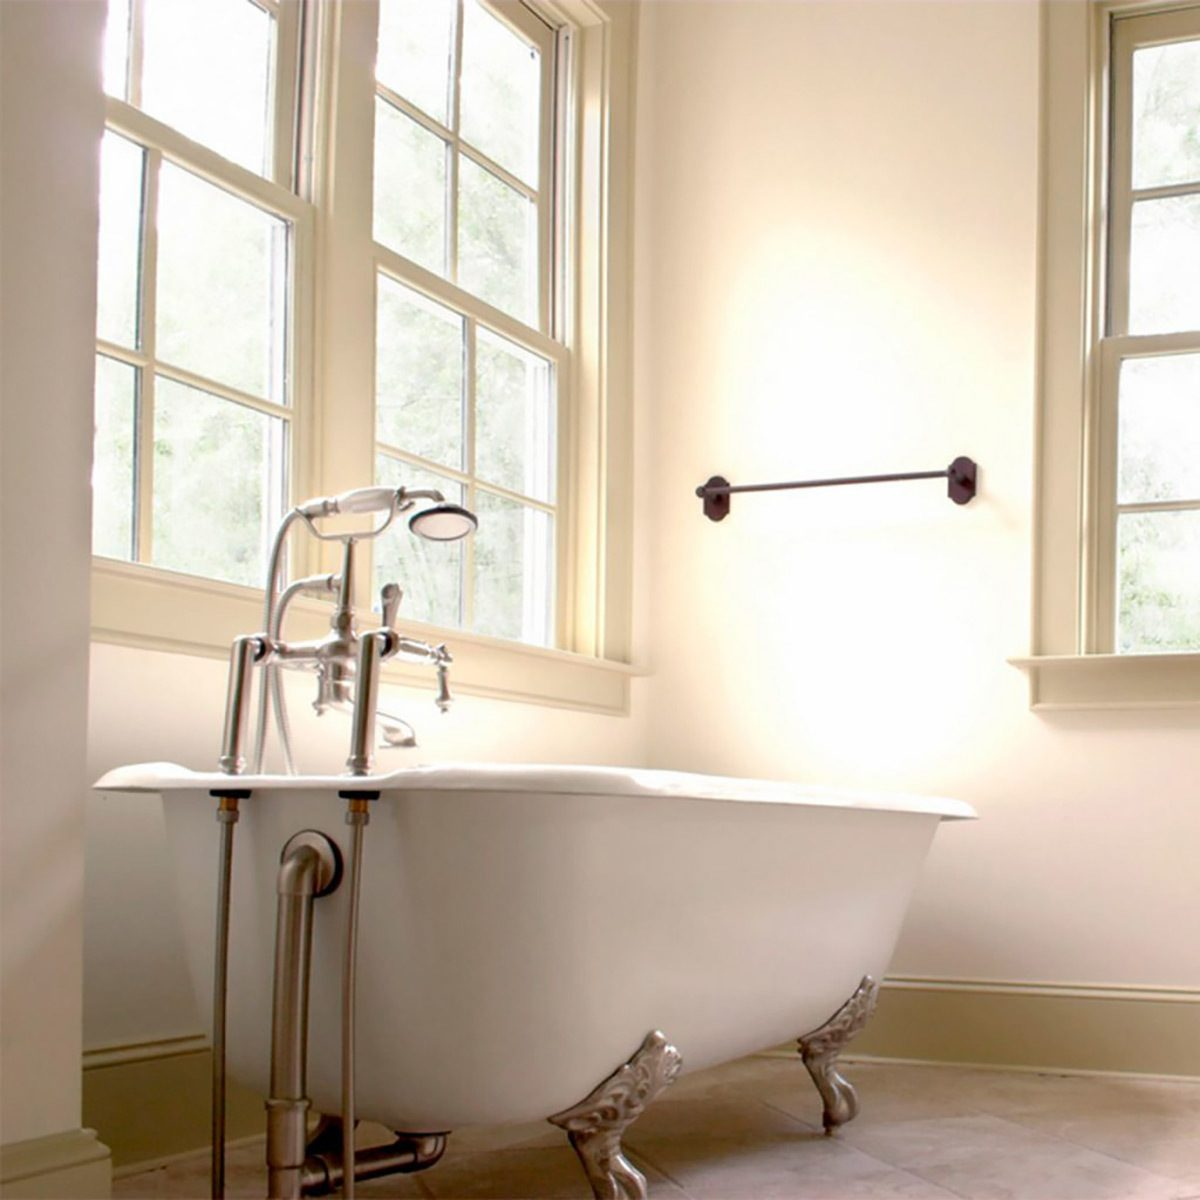 12 Things To Consider When Buying A New Bathtub Family